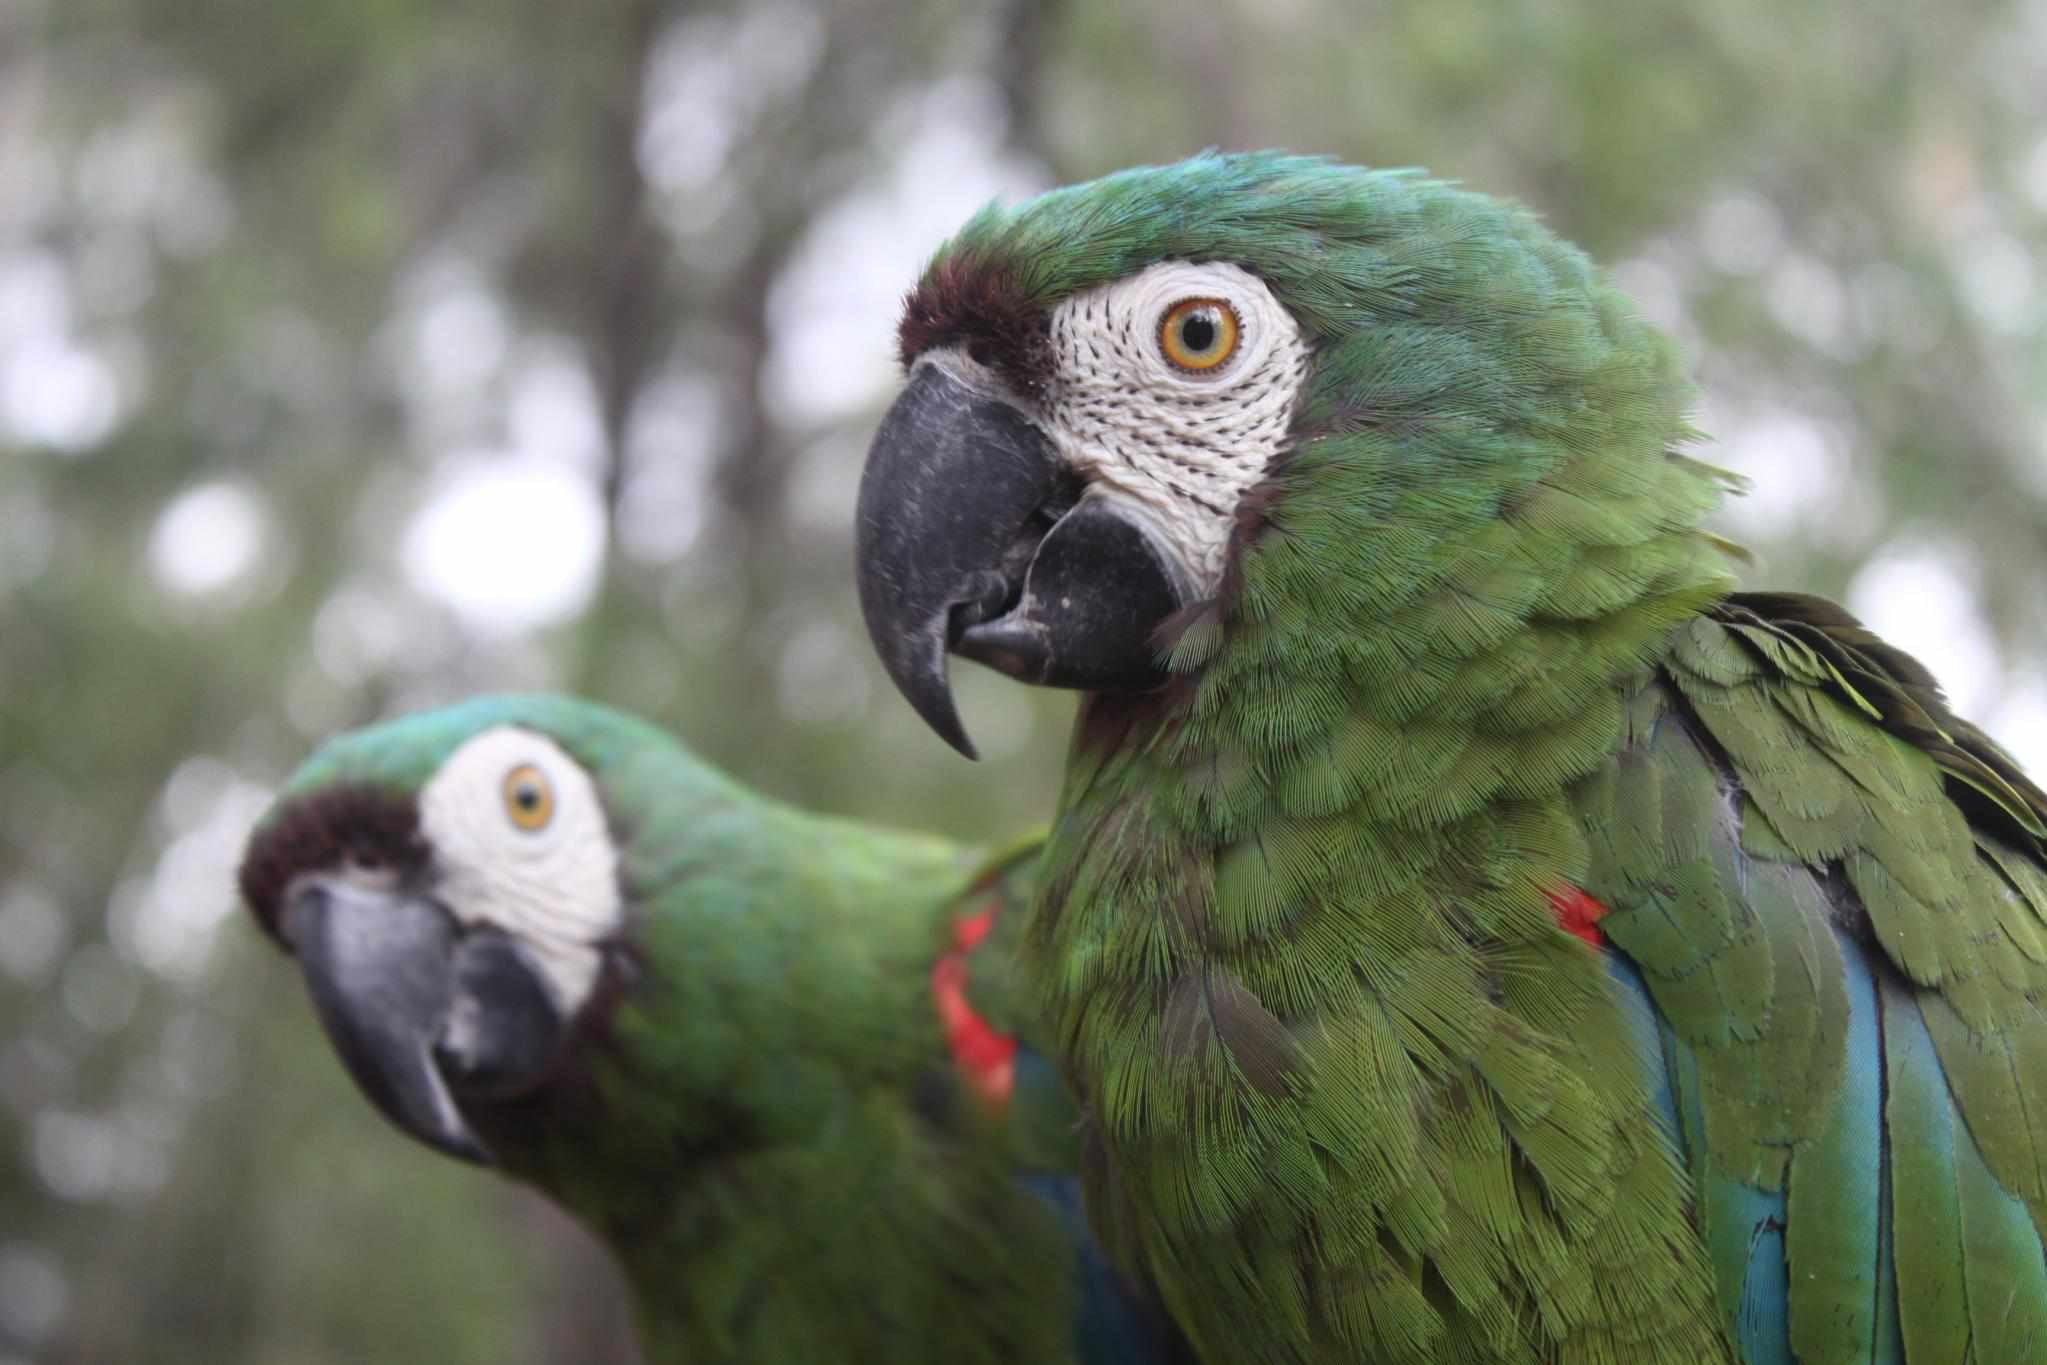 Two Severe macaws staring at the camera.